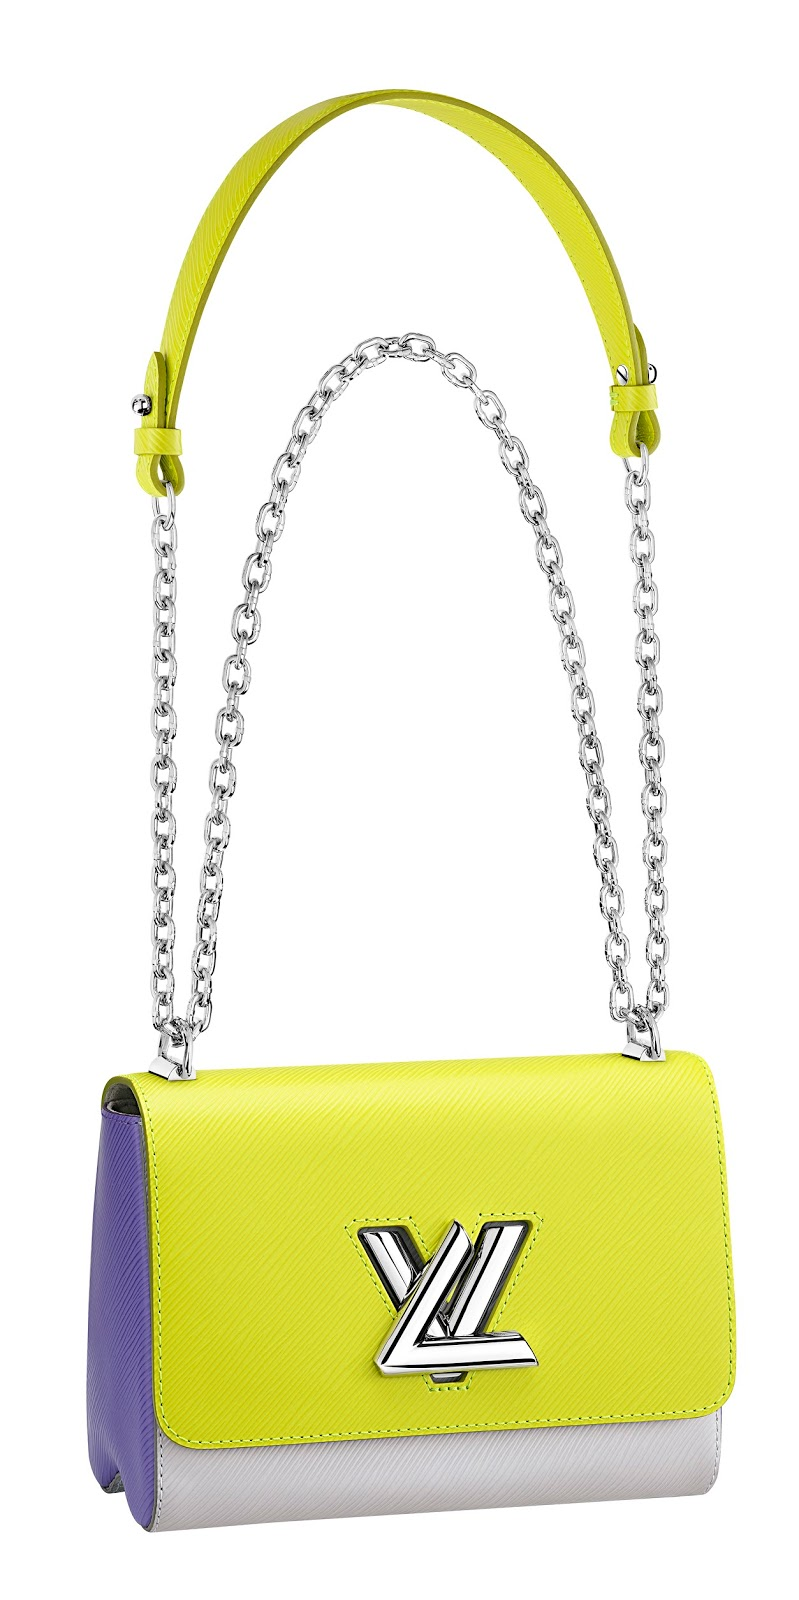 Vuitton Goes Neon for Spring/Summer 16